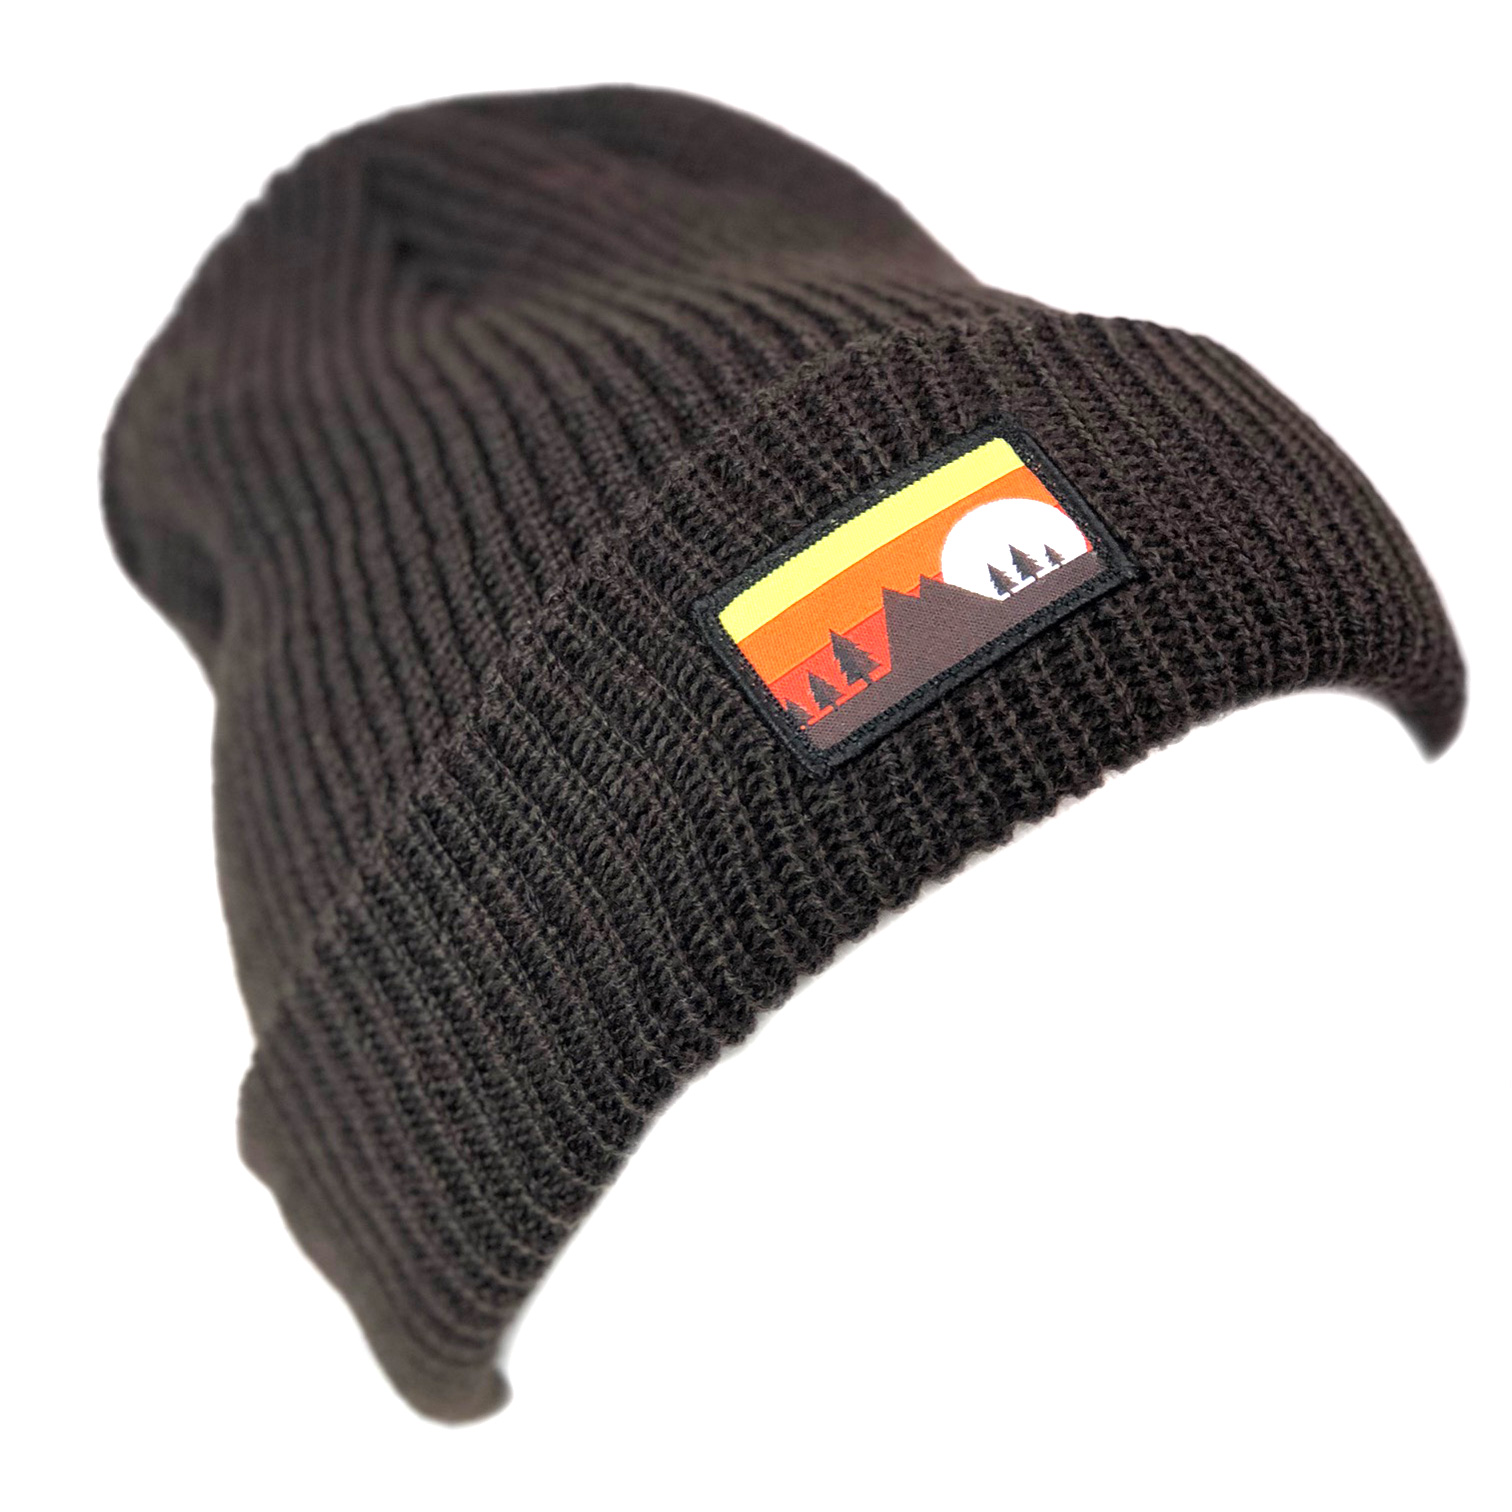 2019_02.05_Beanies_ReflectionScapeRibbed_Brown_Front